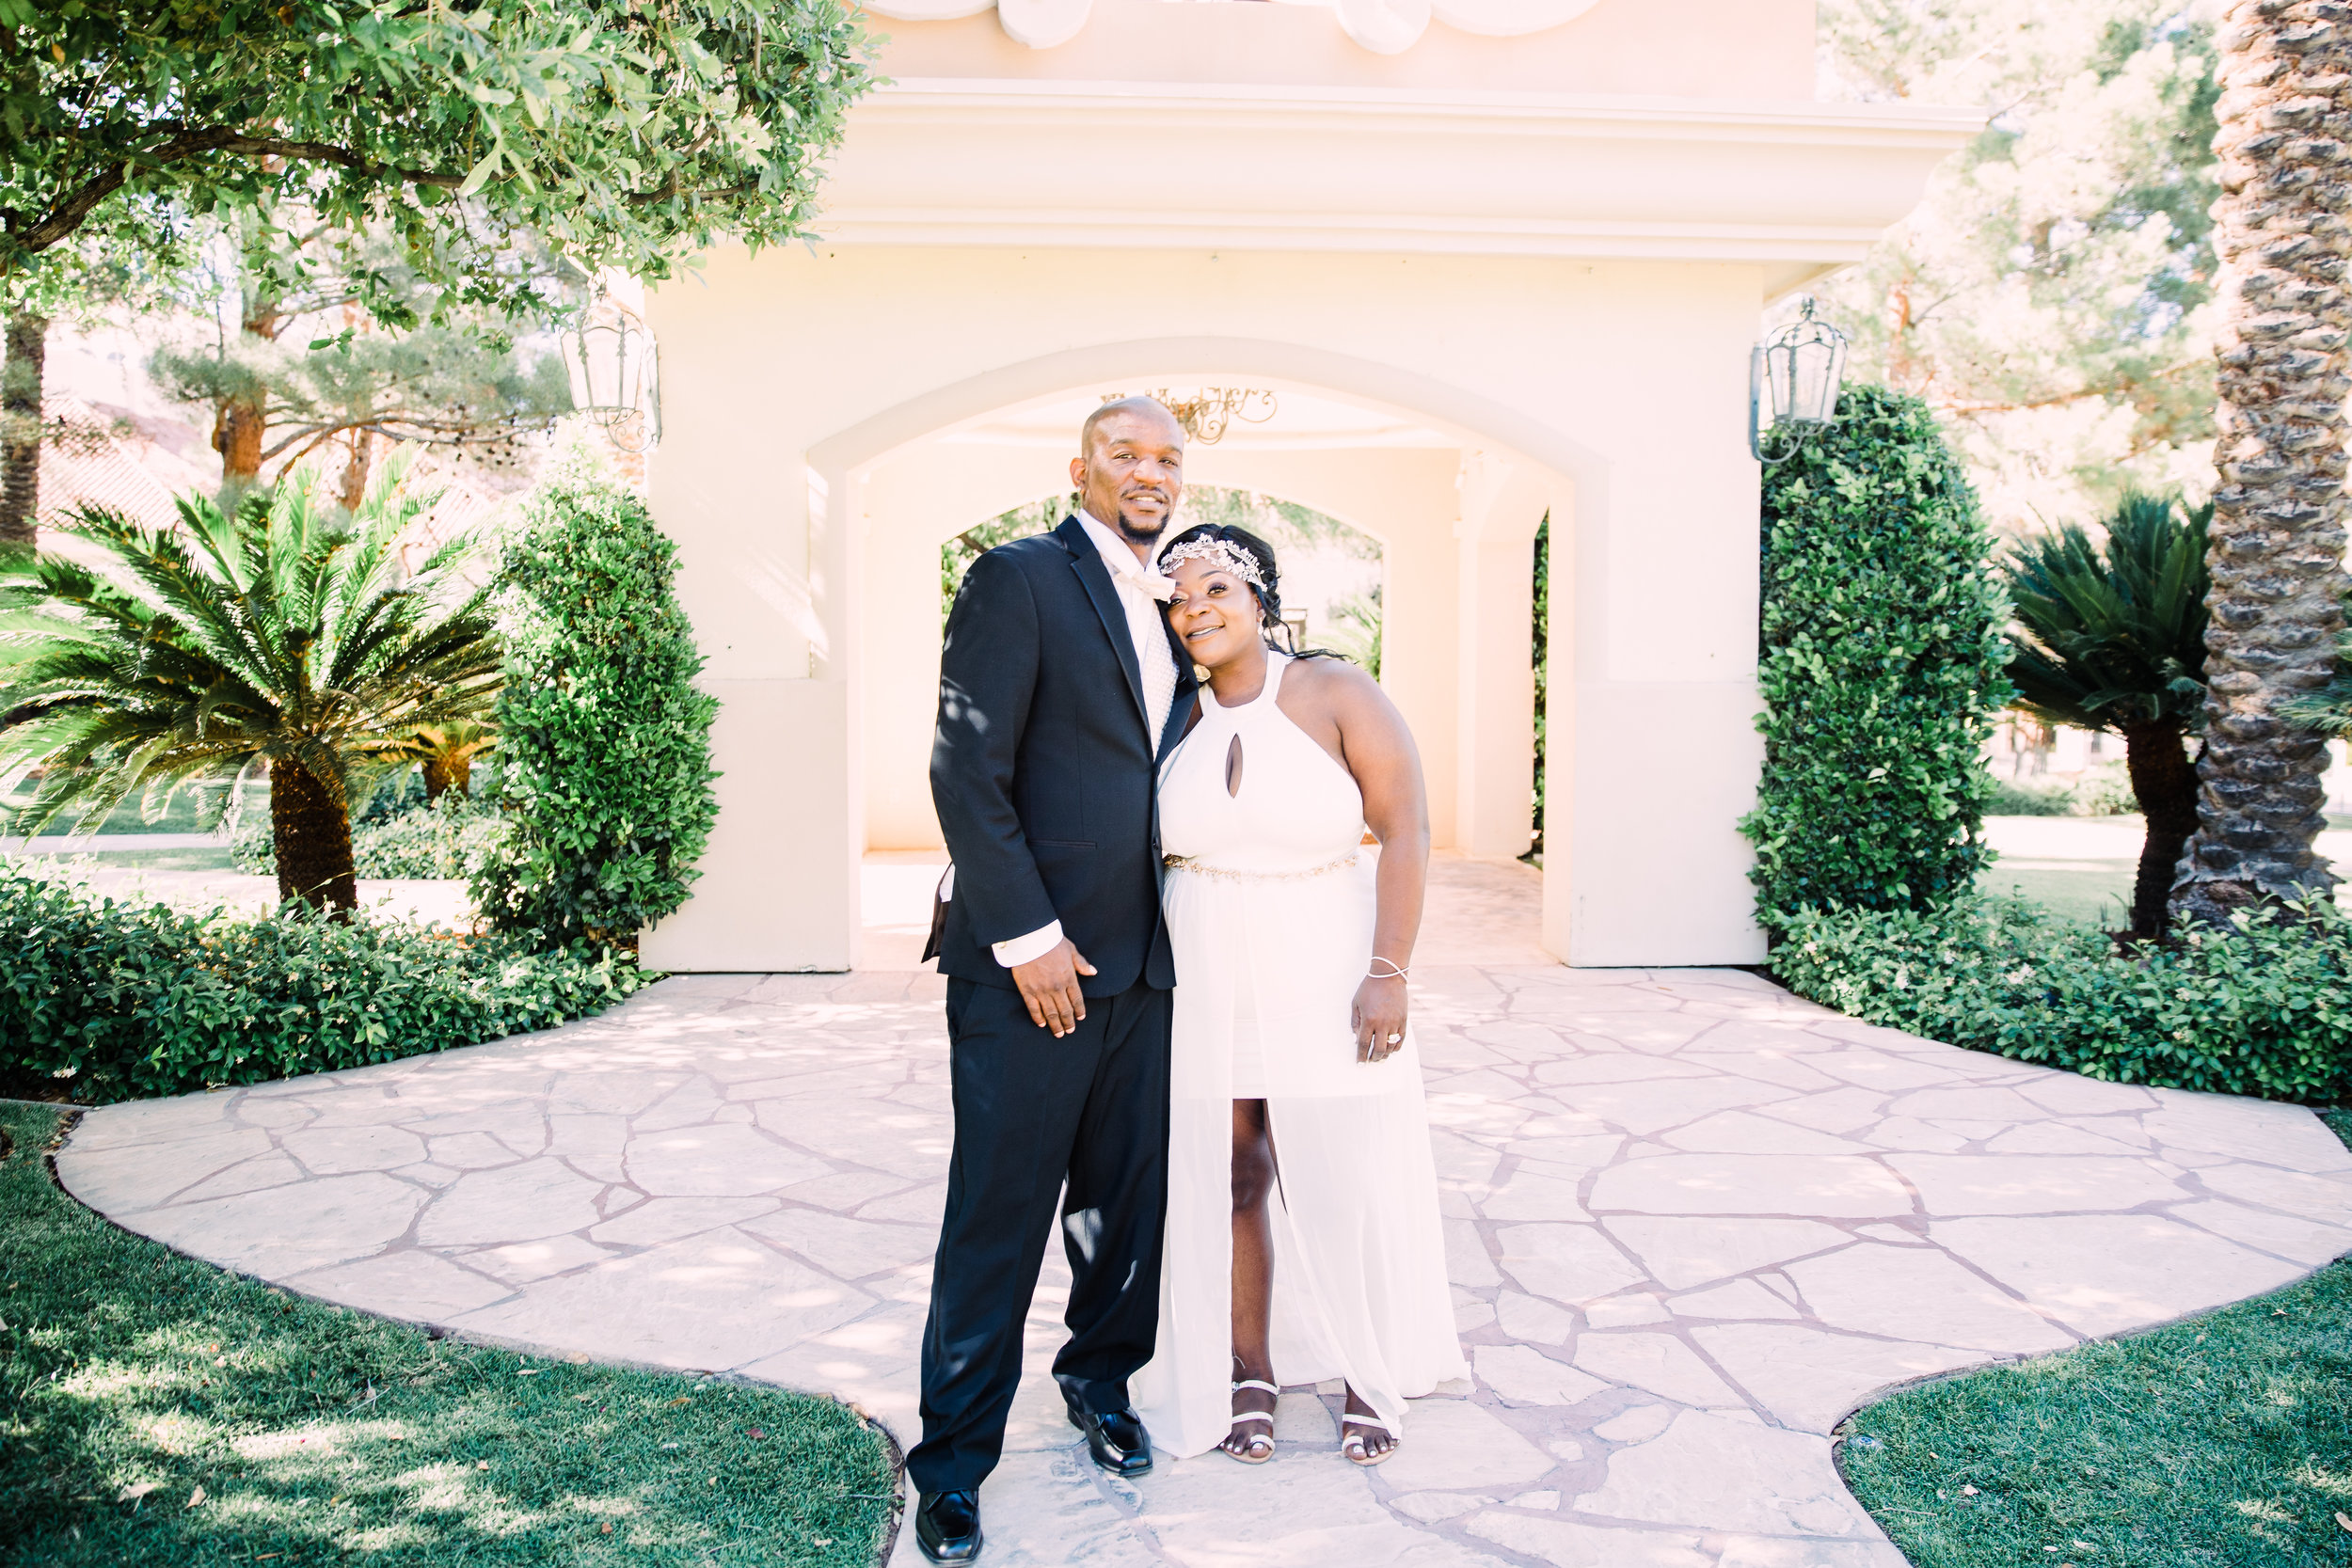 JW Marriott Las Vegas Elopement